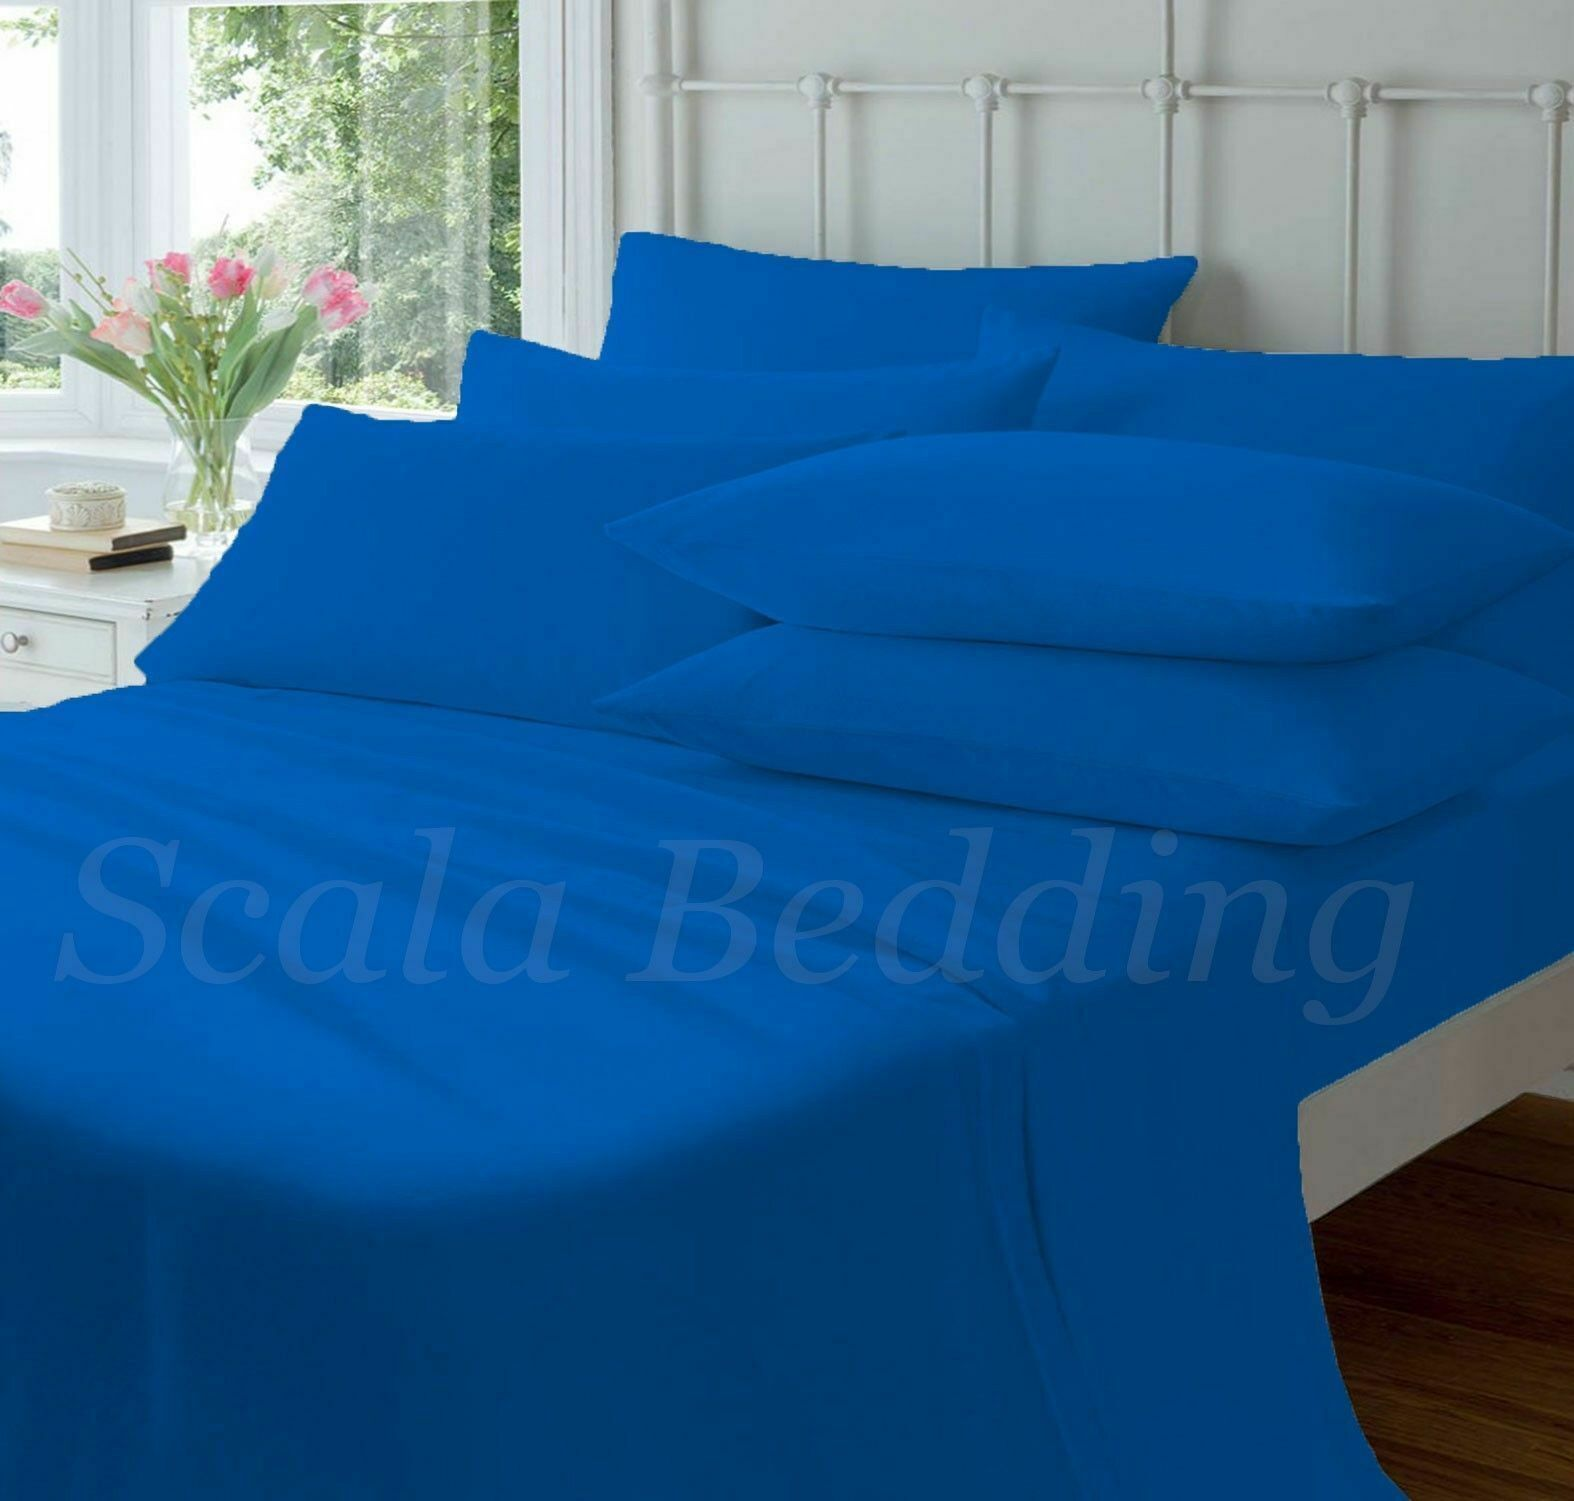 NEW BED SHEET SETS QUEEN SIZE blueE COLOR 800 THREAD COUNT 100% EGYPTIAN COTTON